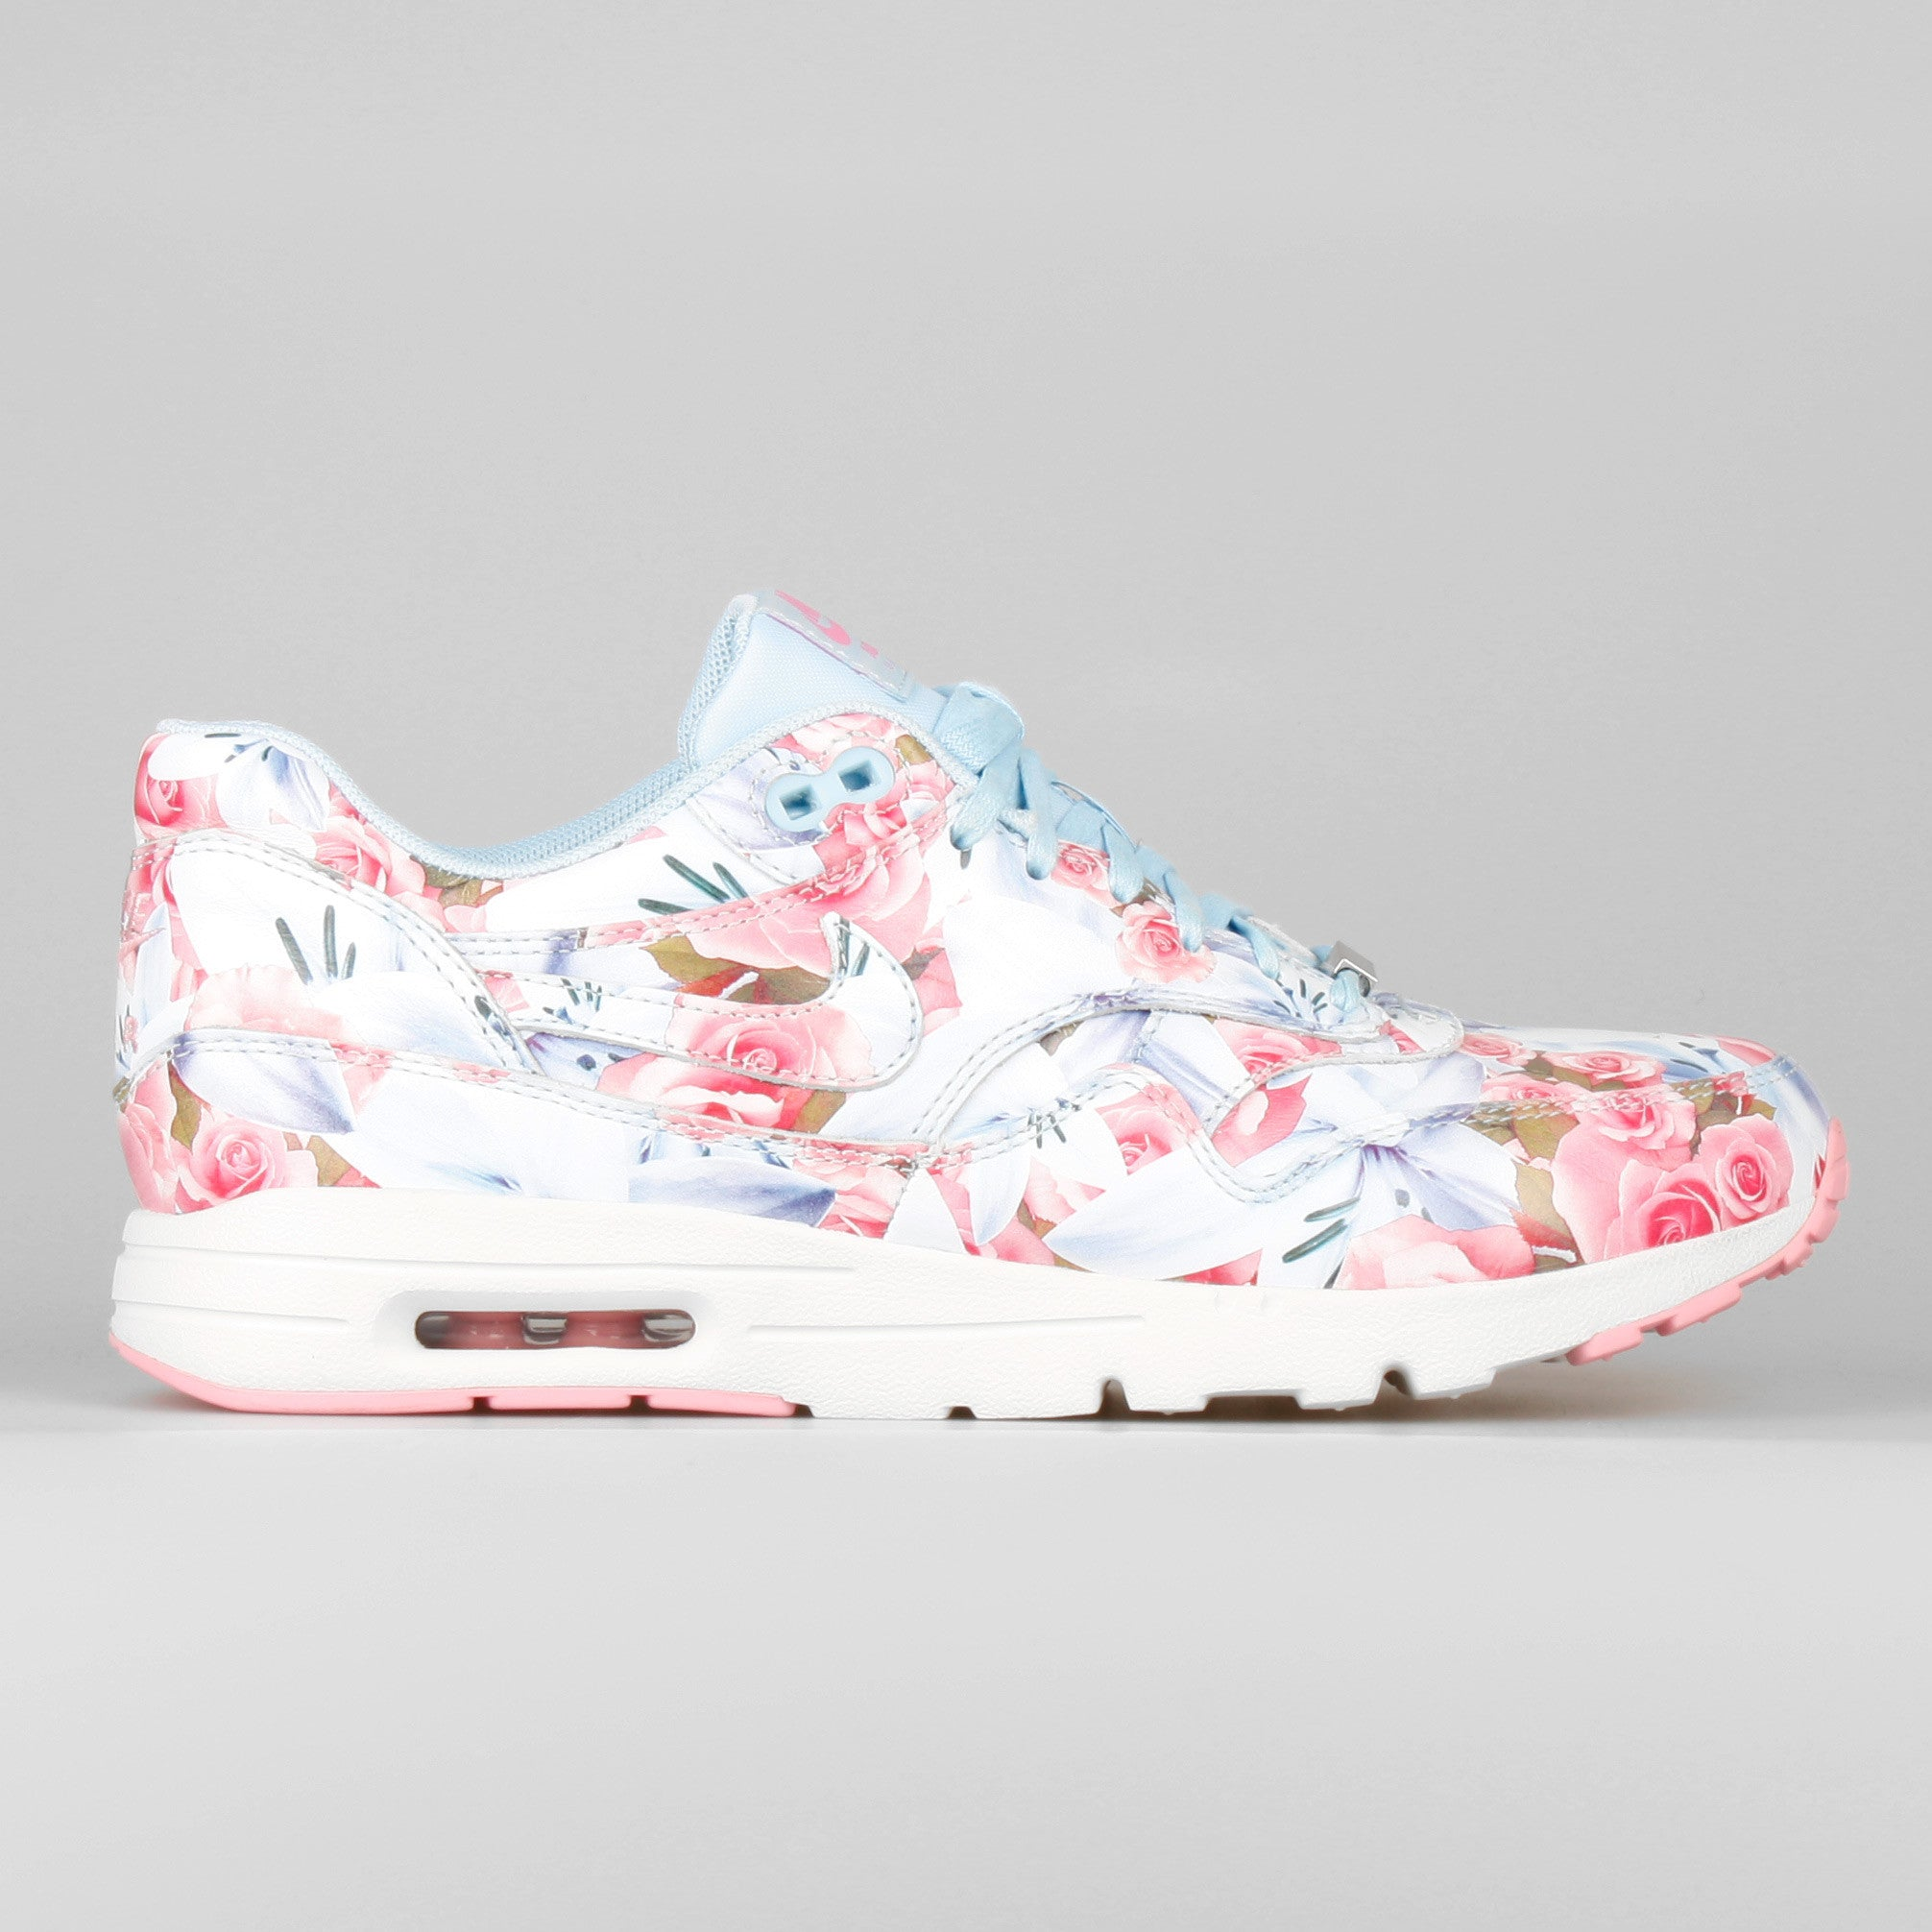 air max 1 ultra lotc qs